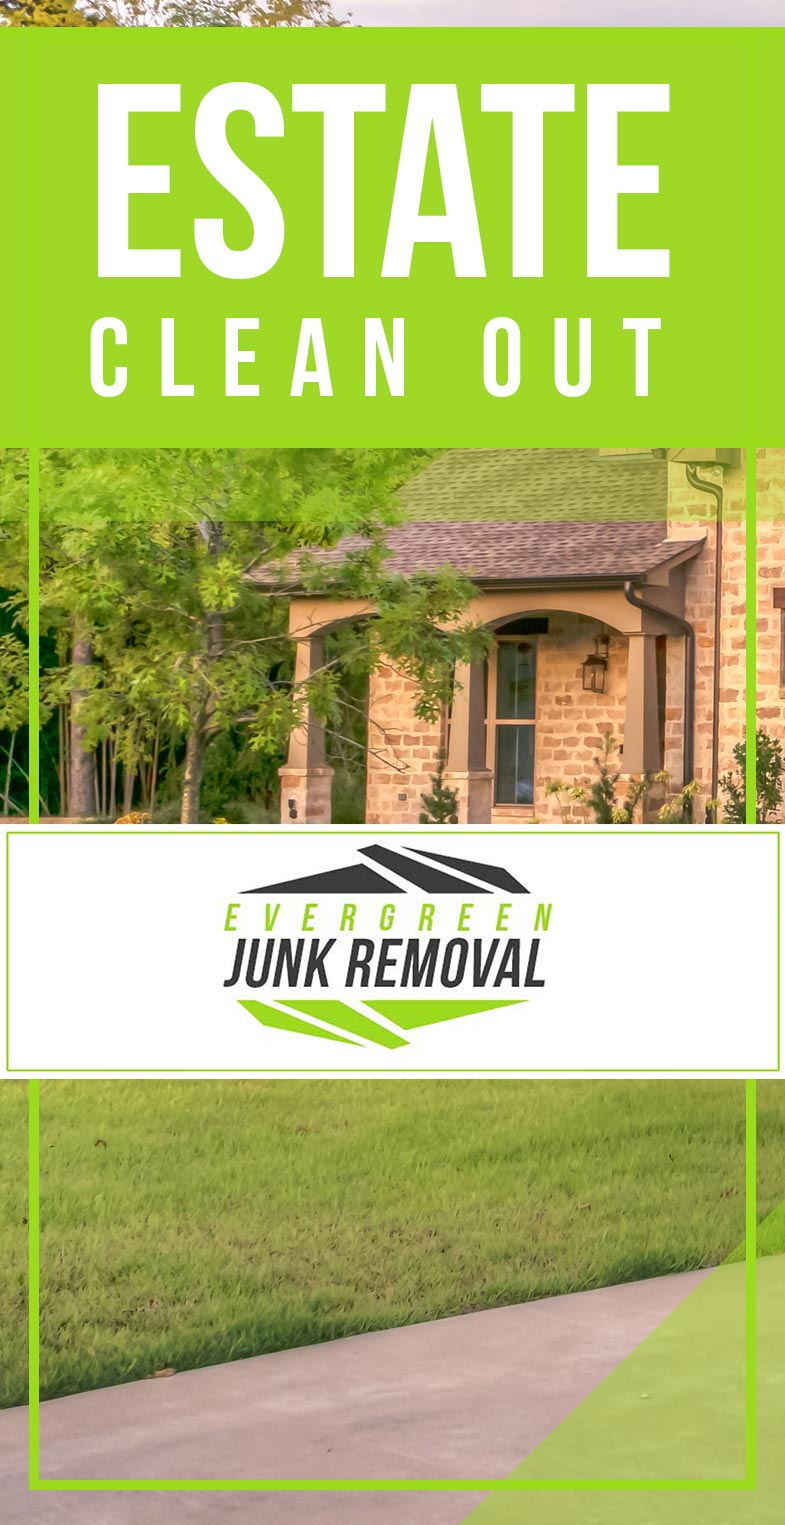 Colleyville Property Clean Out